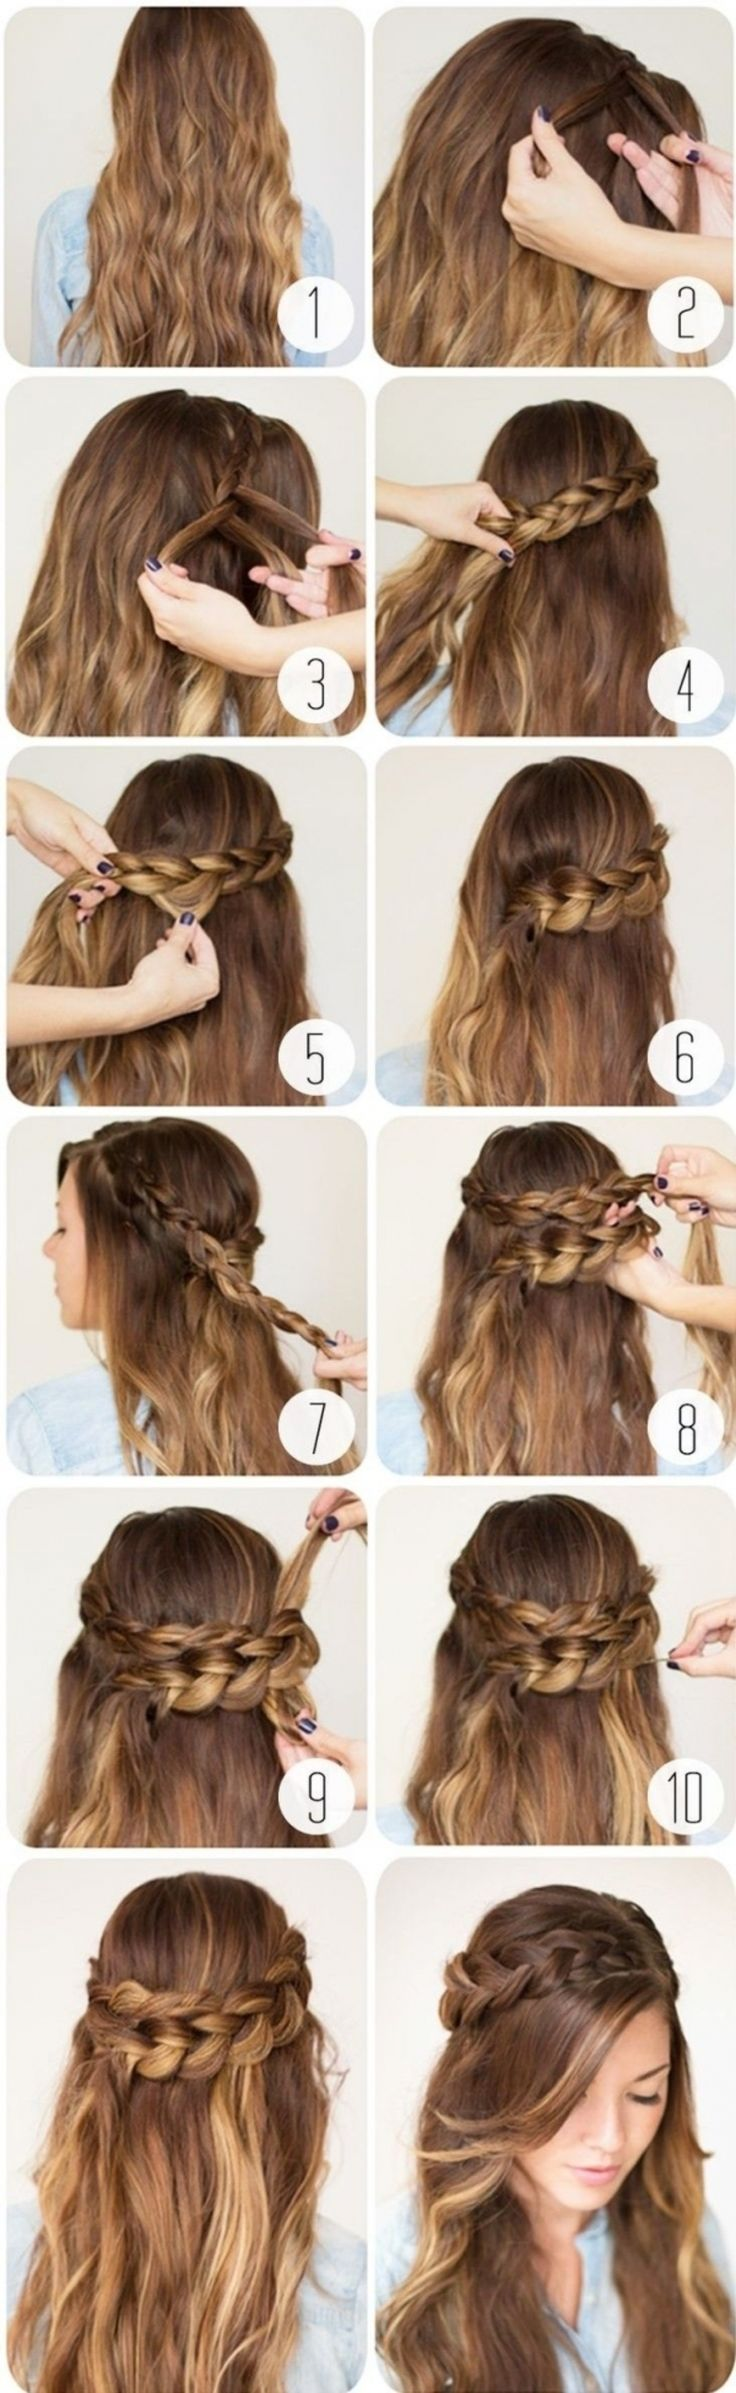 218 best everyday hairstyle ideas images on pinterest | hair